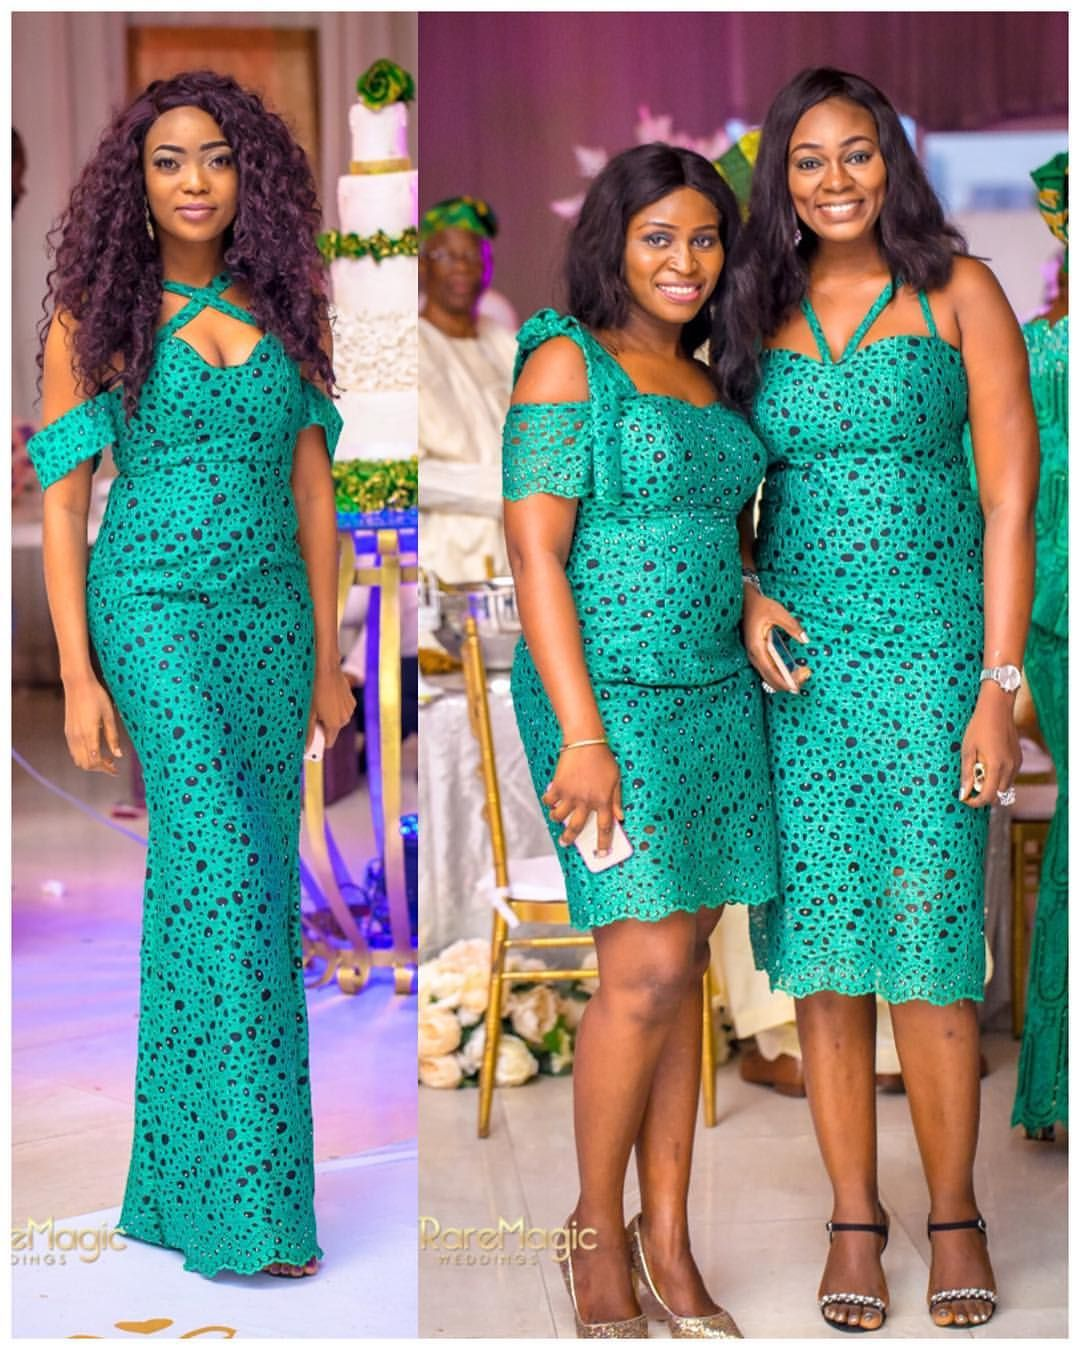 Pin by Roukie on Women\'s fashion | Pinterest | Nigerian weddings ...